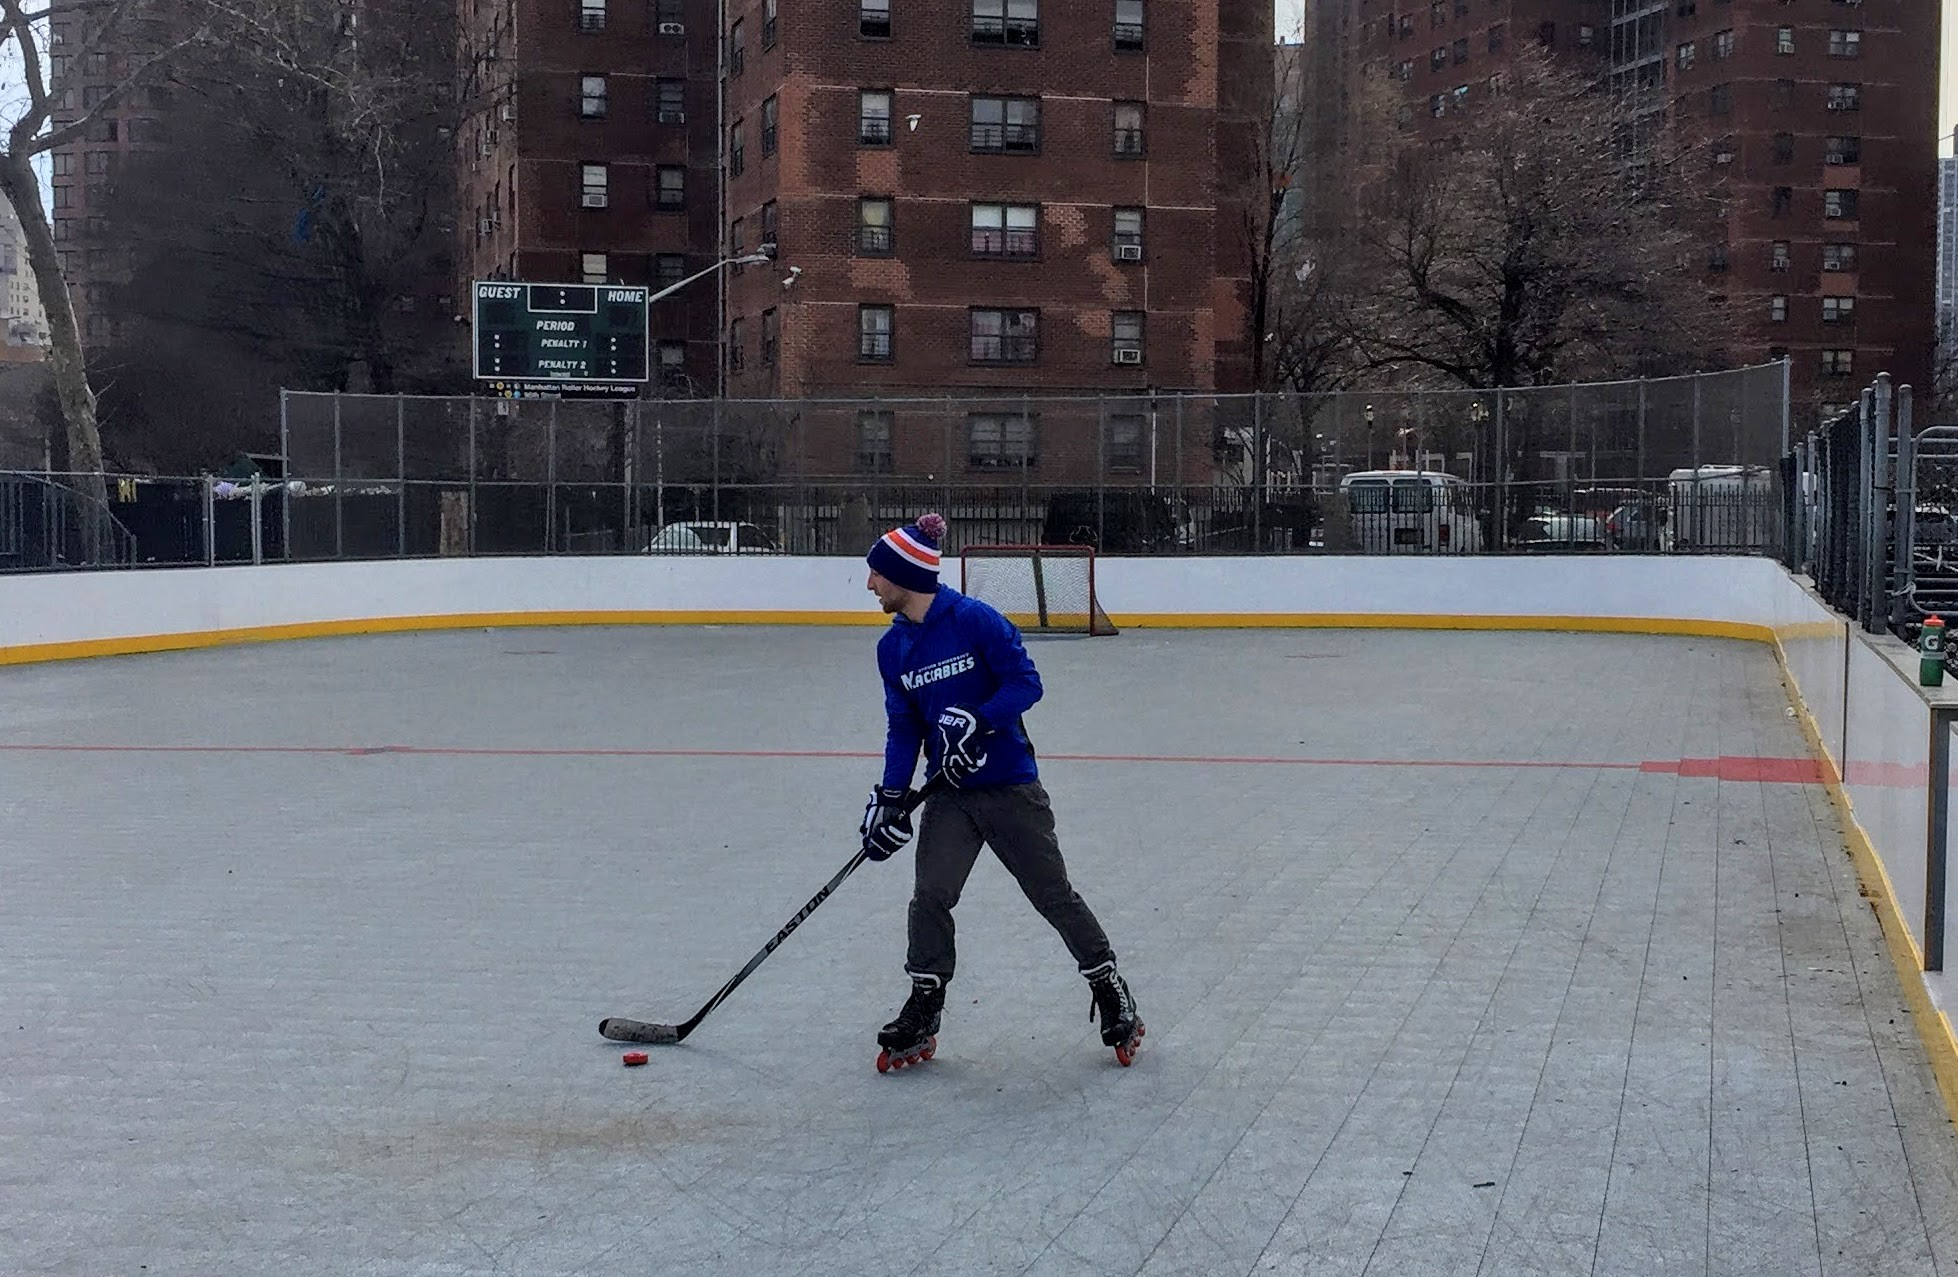 Avi Margulies practiced on a rink in northern Manhattan. Margulies co-founded the Maccabees roller hockey team two years ago at Yeshiva University.